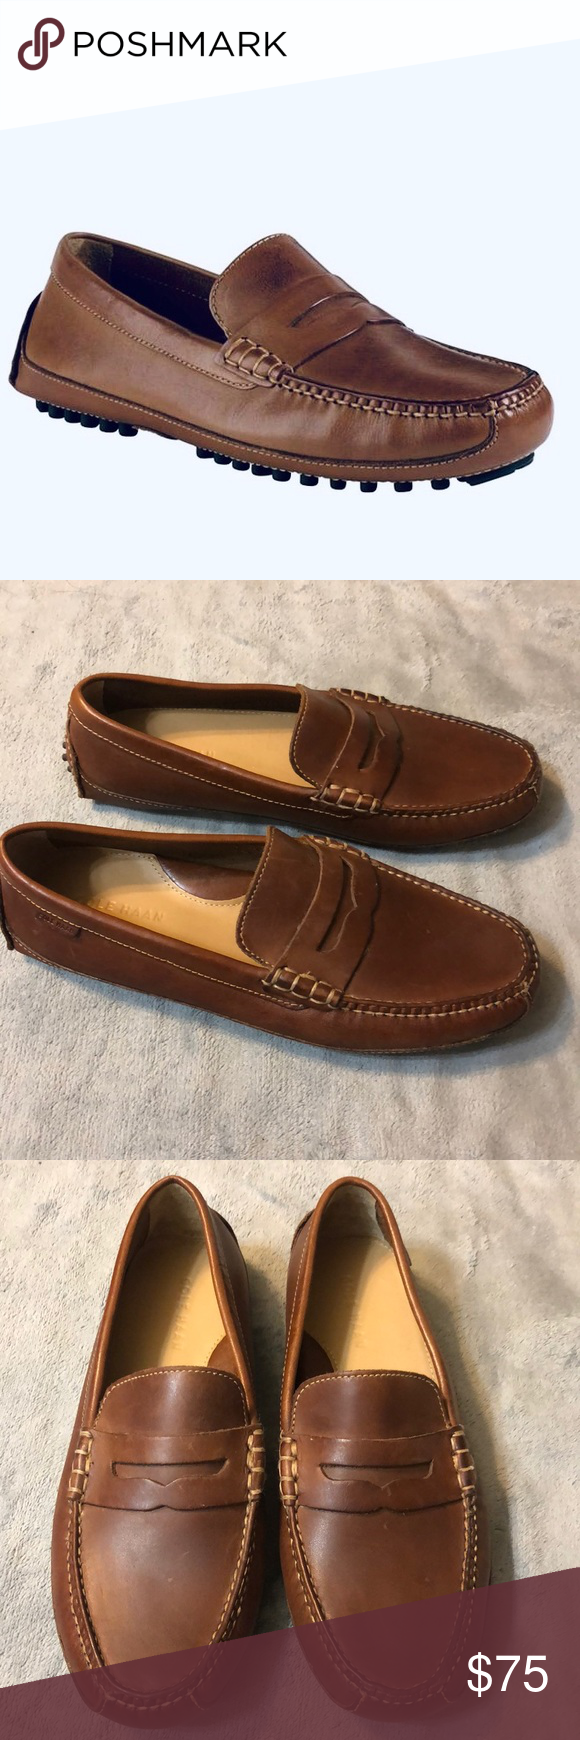 Wide Cole Haan Mens Grant Canoe Brown Loafers Size 6.5